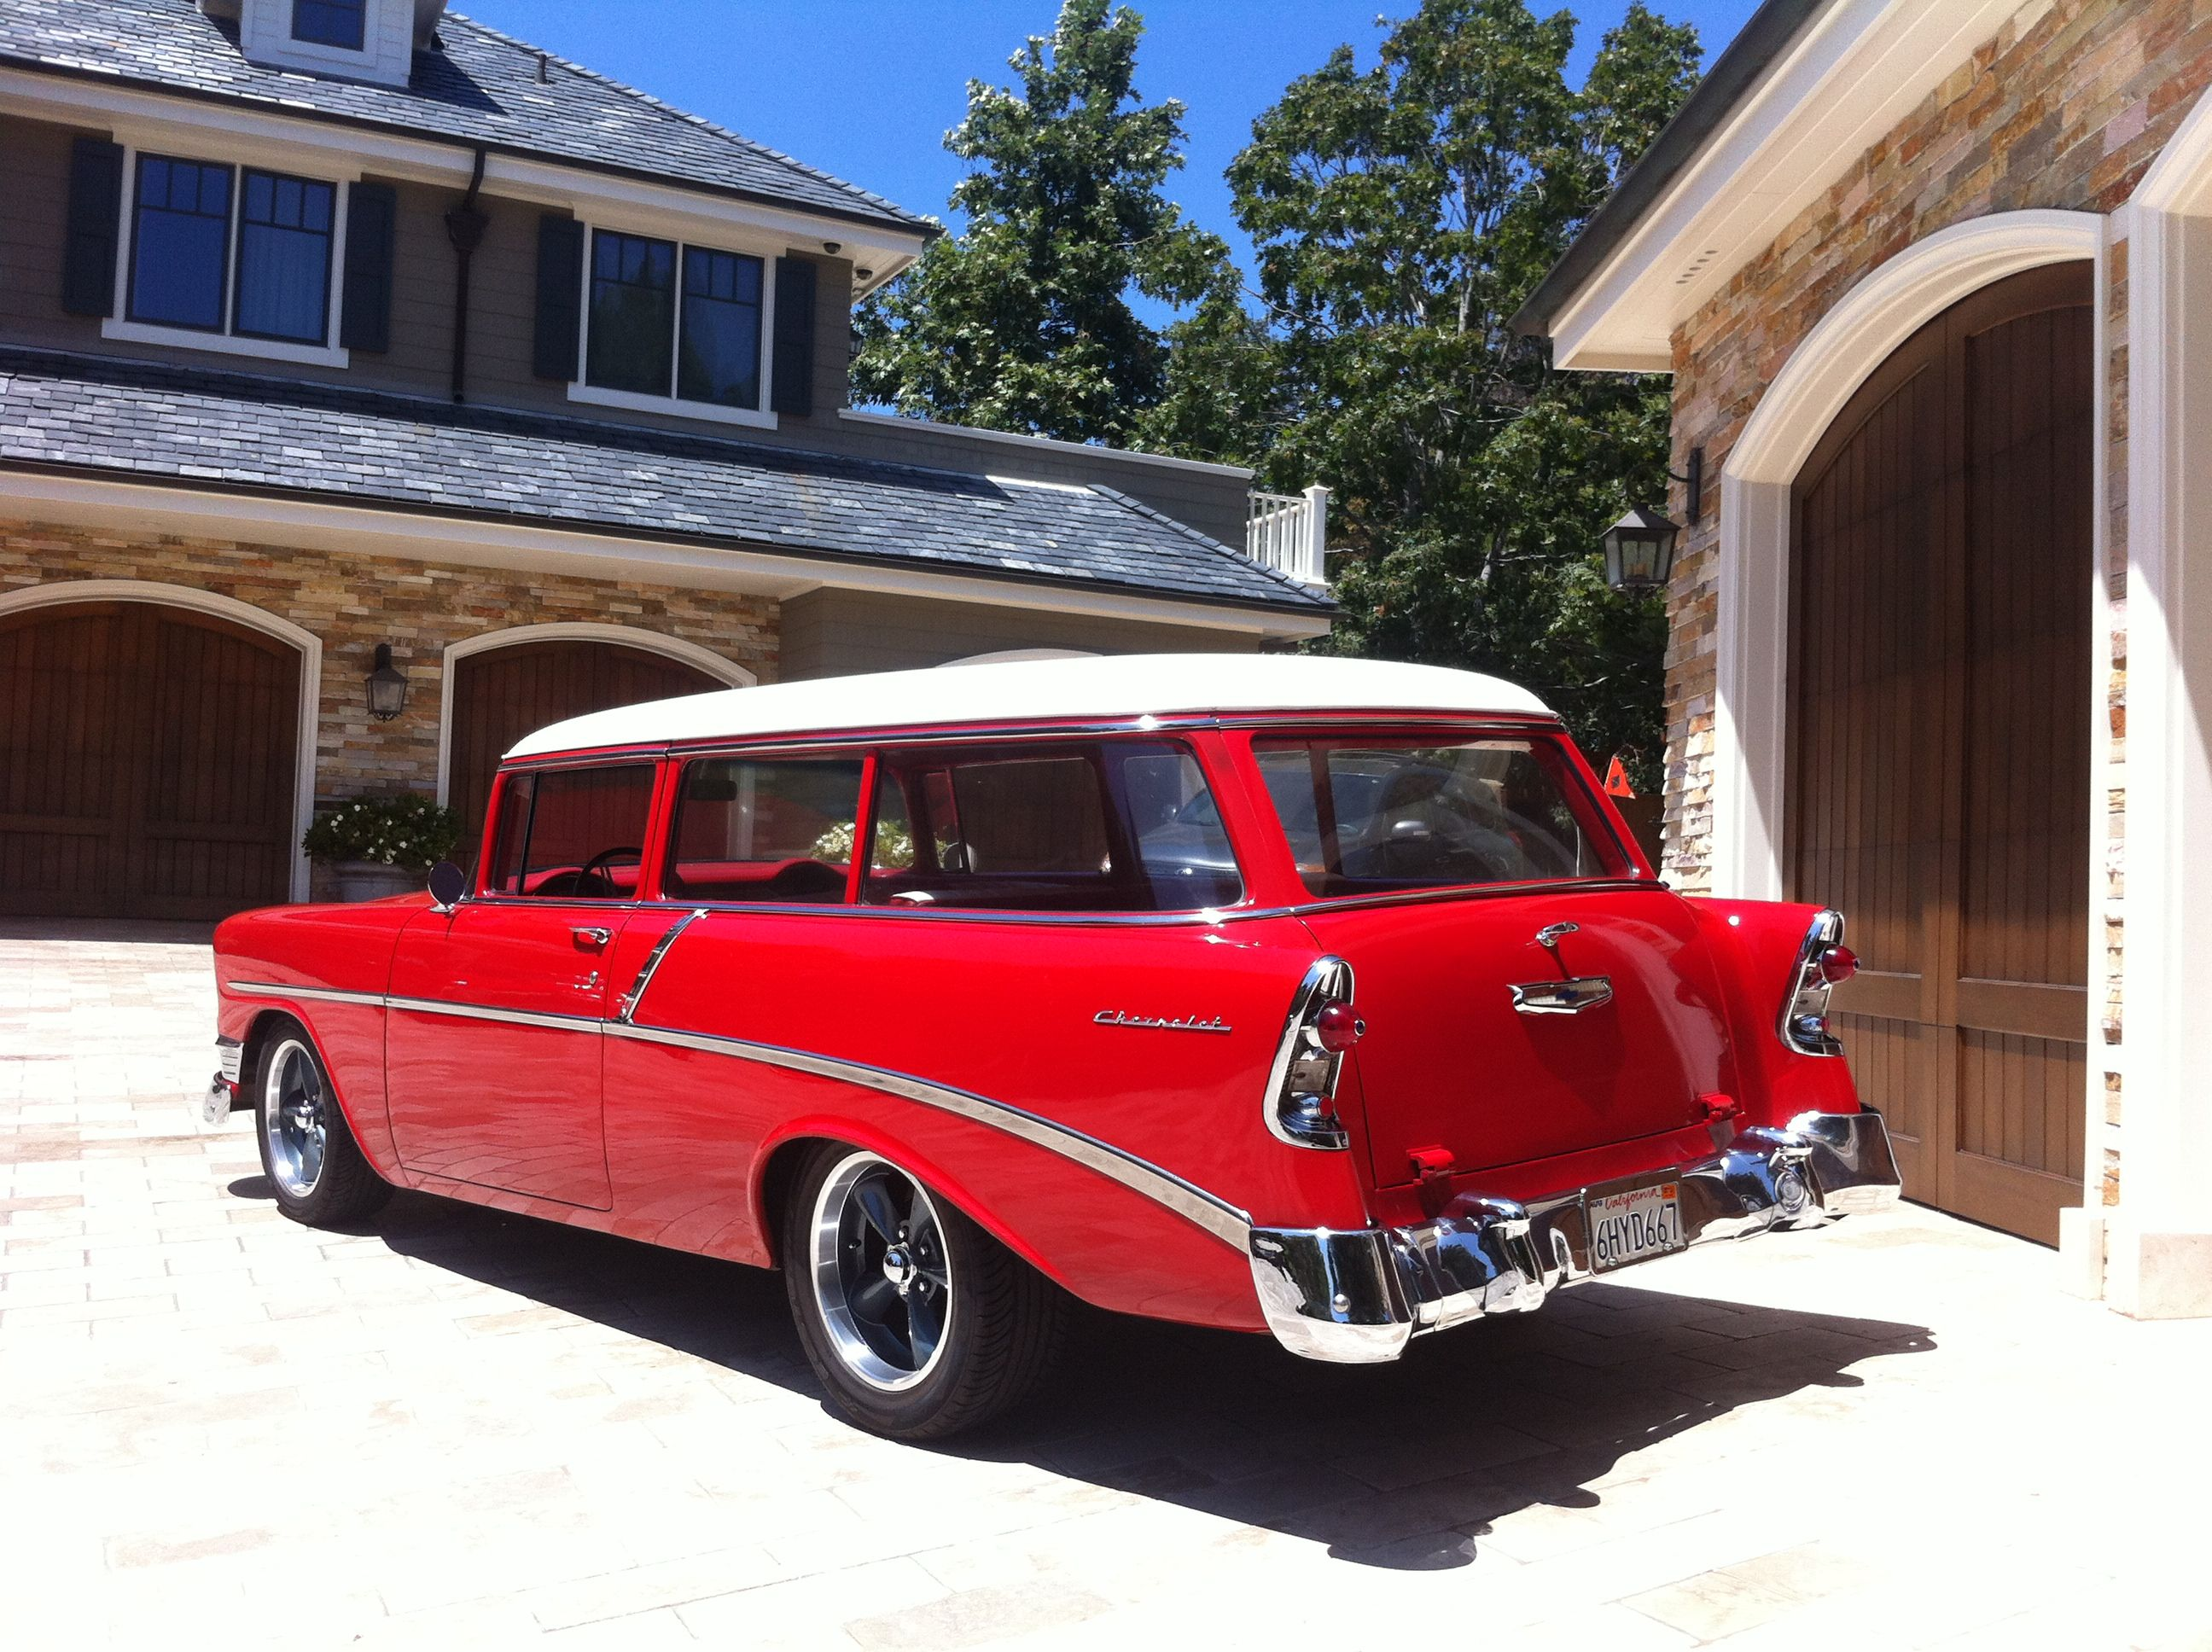 1956 Chevy 210 Wagon Handyman Red, for sale in United States ...